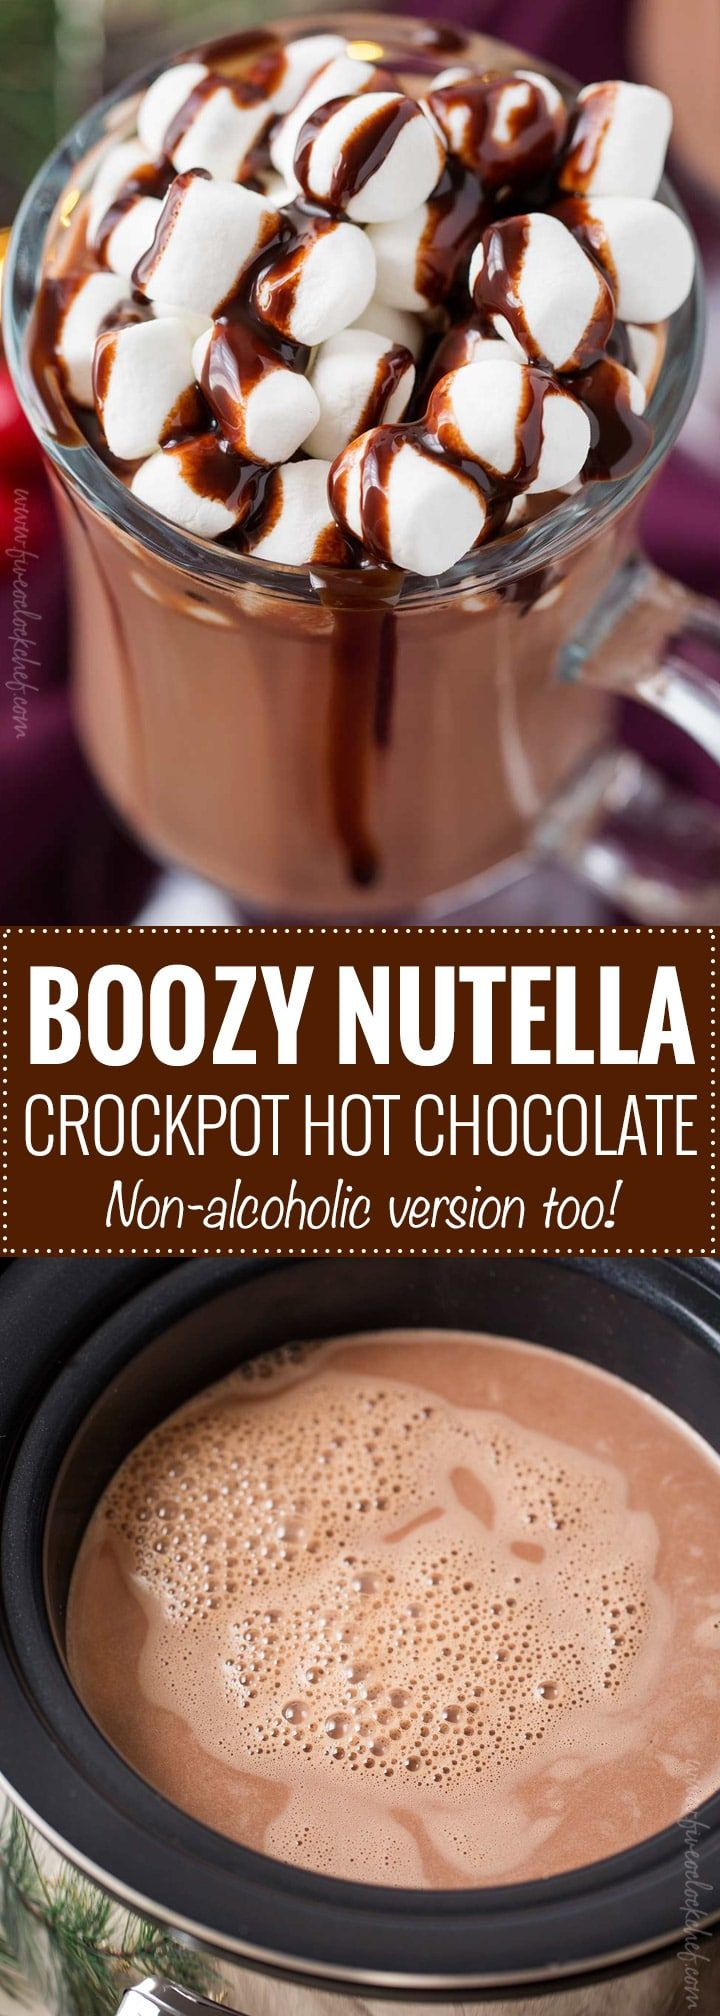 Boozy Nutella Crockpot Hot Chocolate - The 5 o'clock Chef